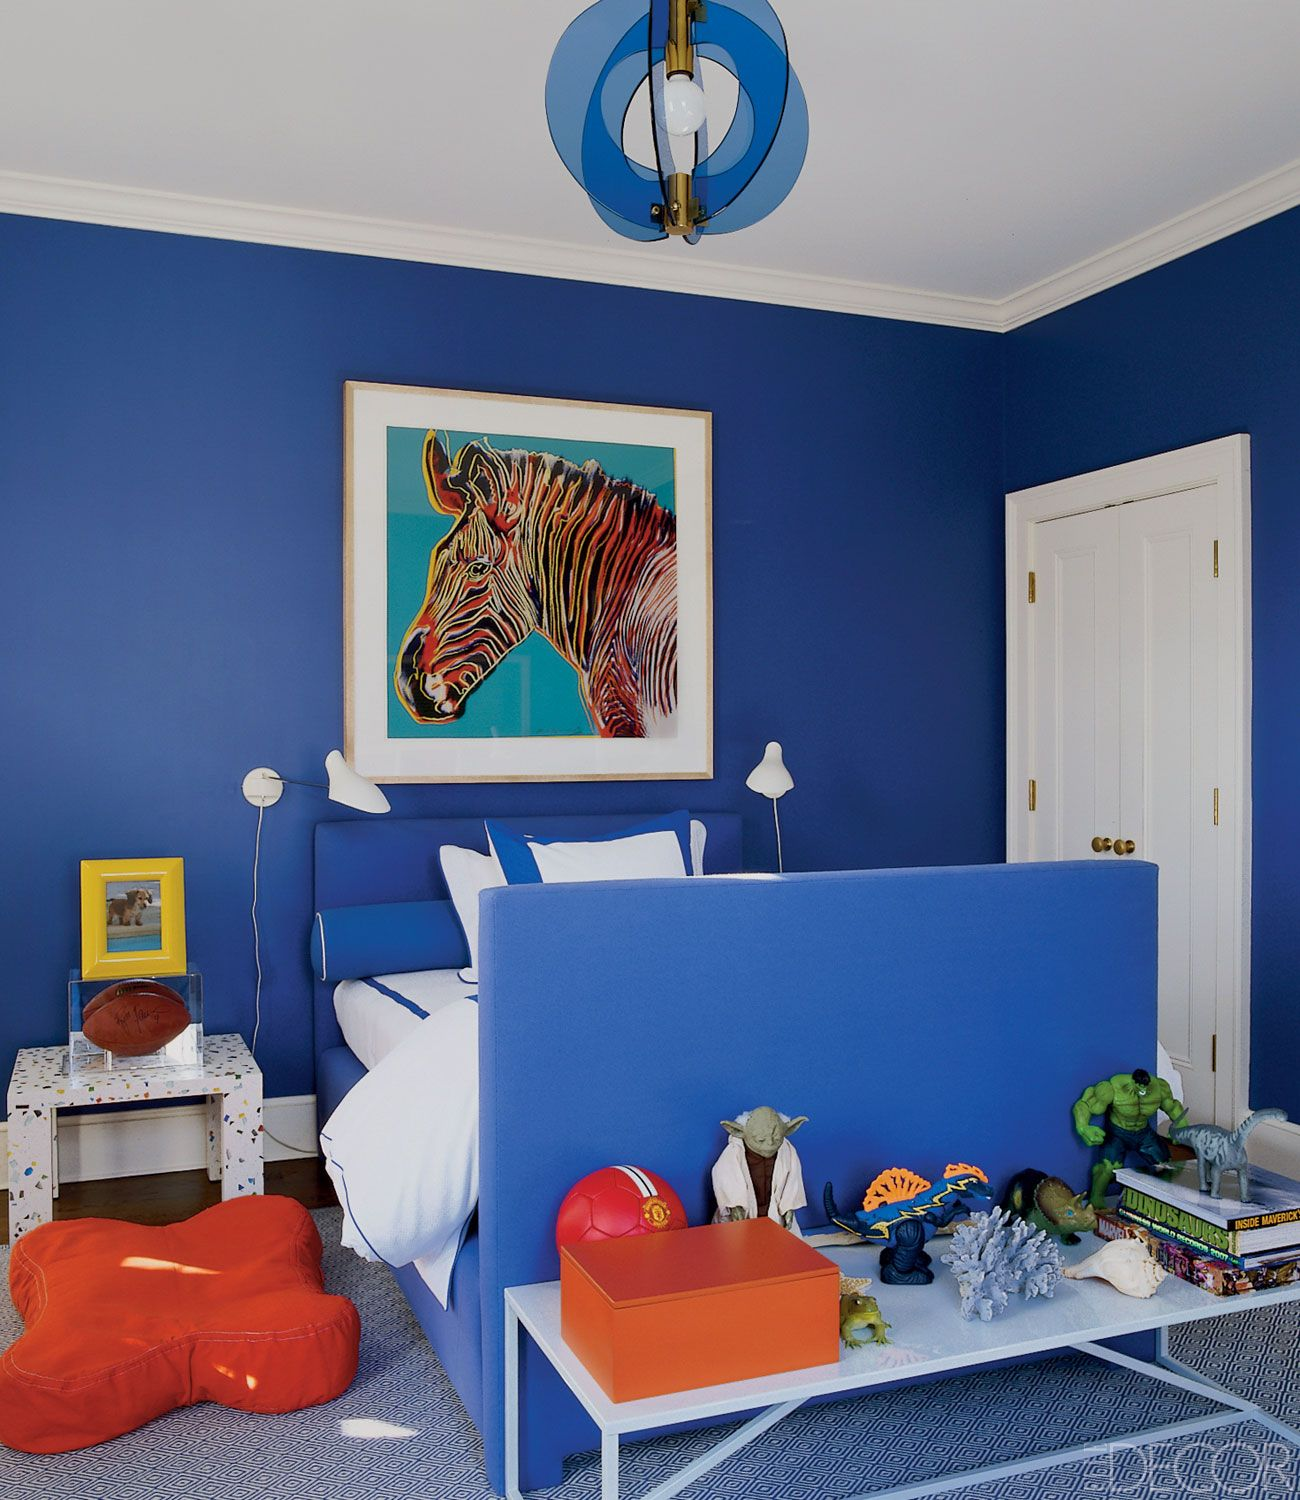 15 cool boys bedroom ideas decorating a little boy room - Boys Room Design Ideas